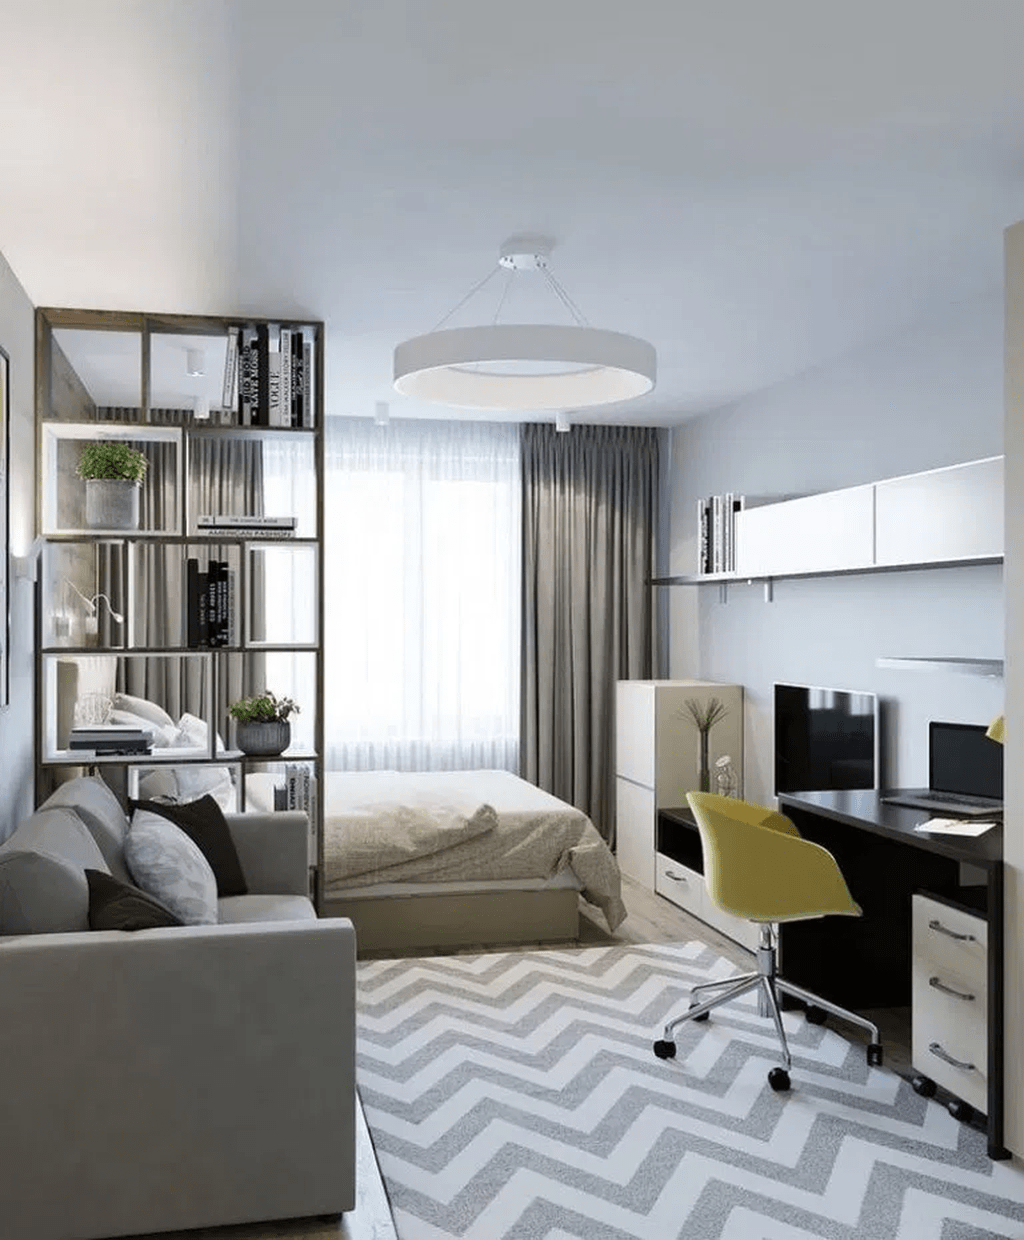 Cool Studio Apartment Ideas You Never Seen Before 24